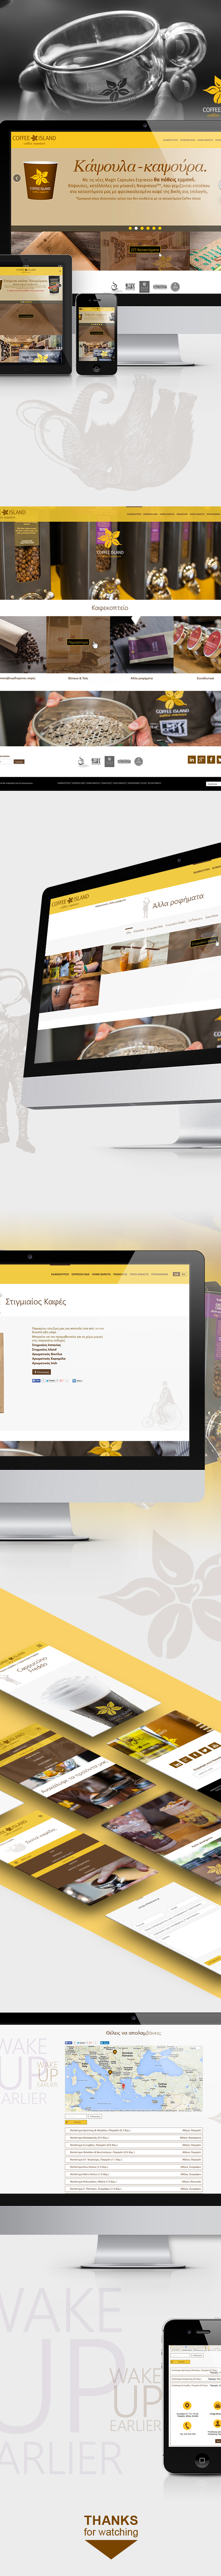 "Redesign Website ""coffeeisland.gr"" on Behance"